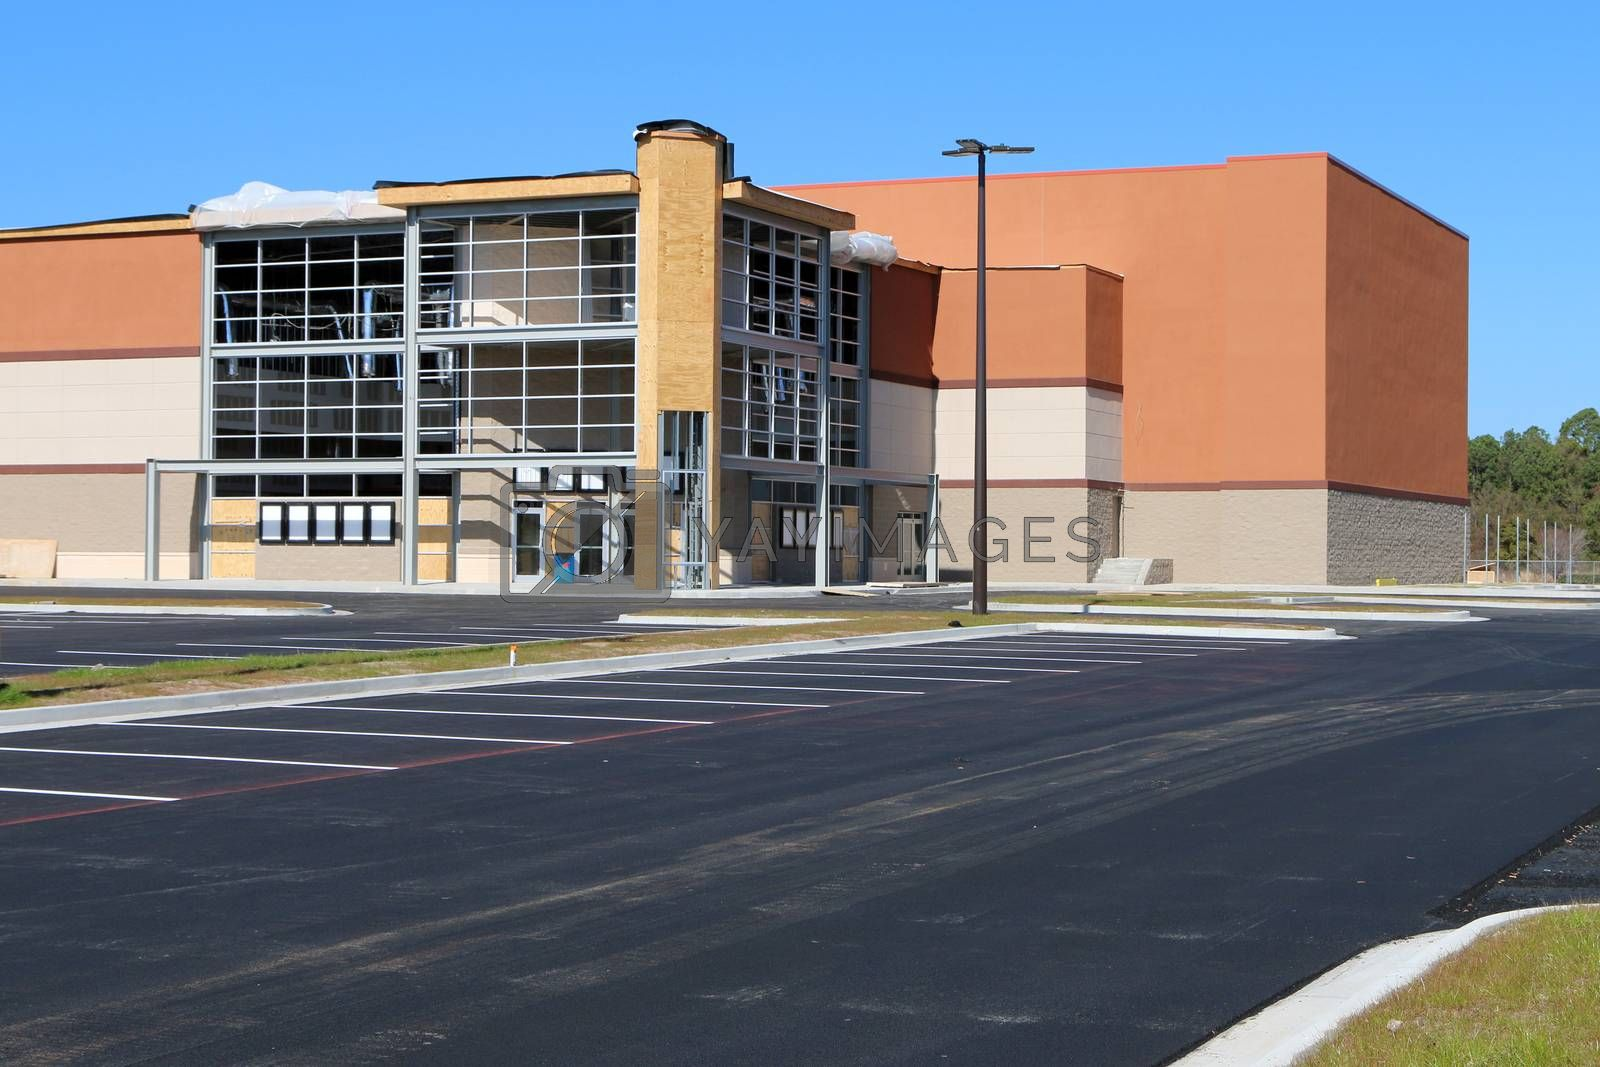 Royalty free image of New movie theatre or big box retailer by jimmartin